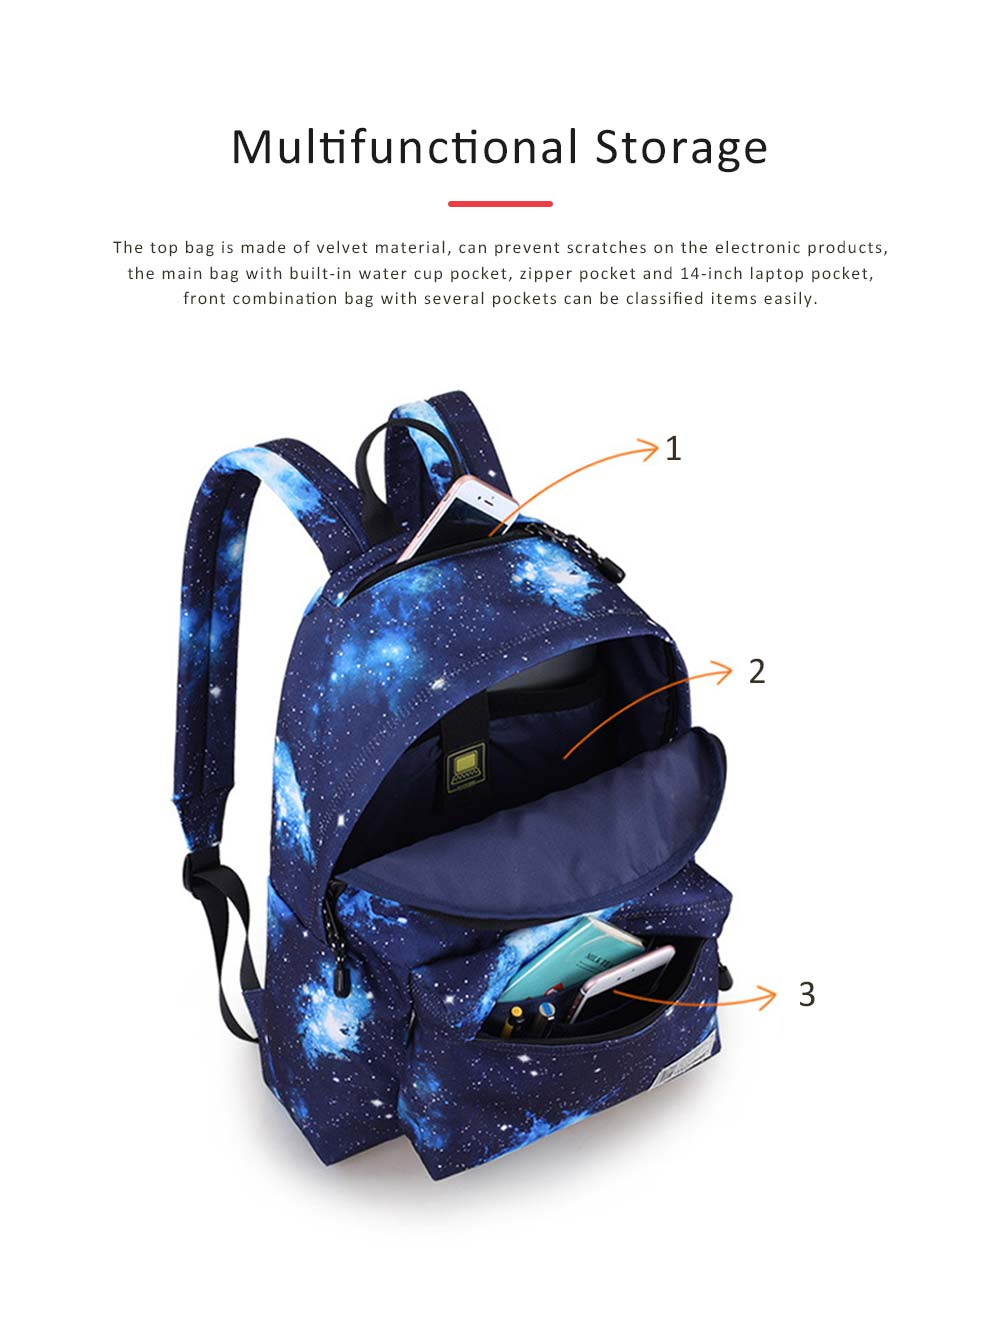 Starry Sky Backpack with Superior SBS Zipper, Fashionable Laptop Backpack for Traveling, Outdoors Shopping 1